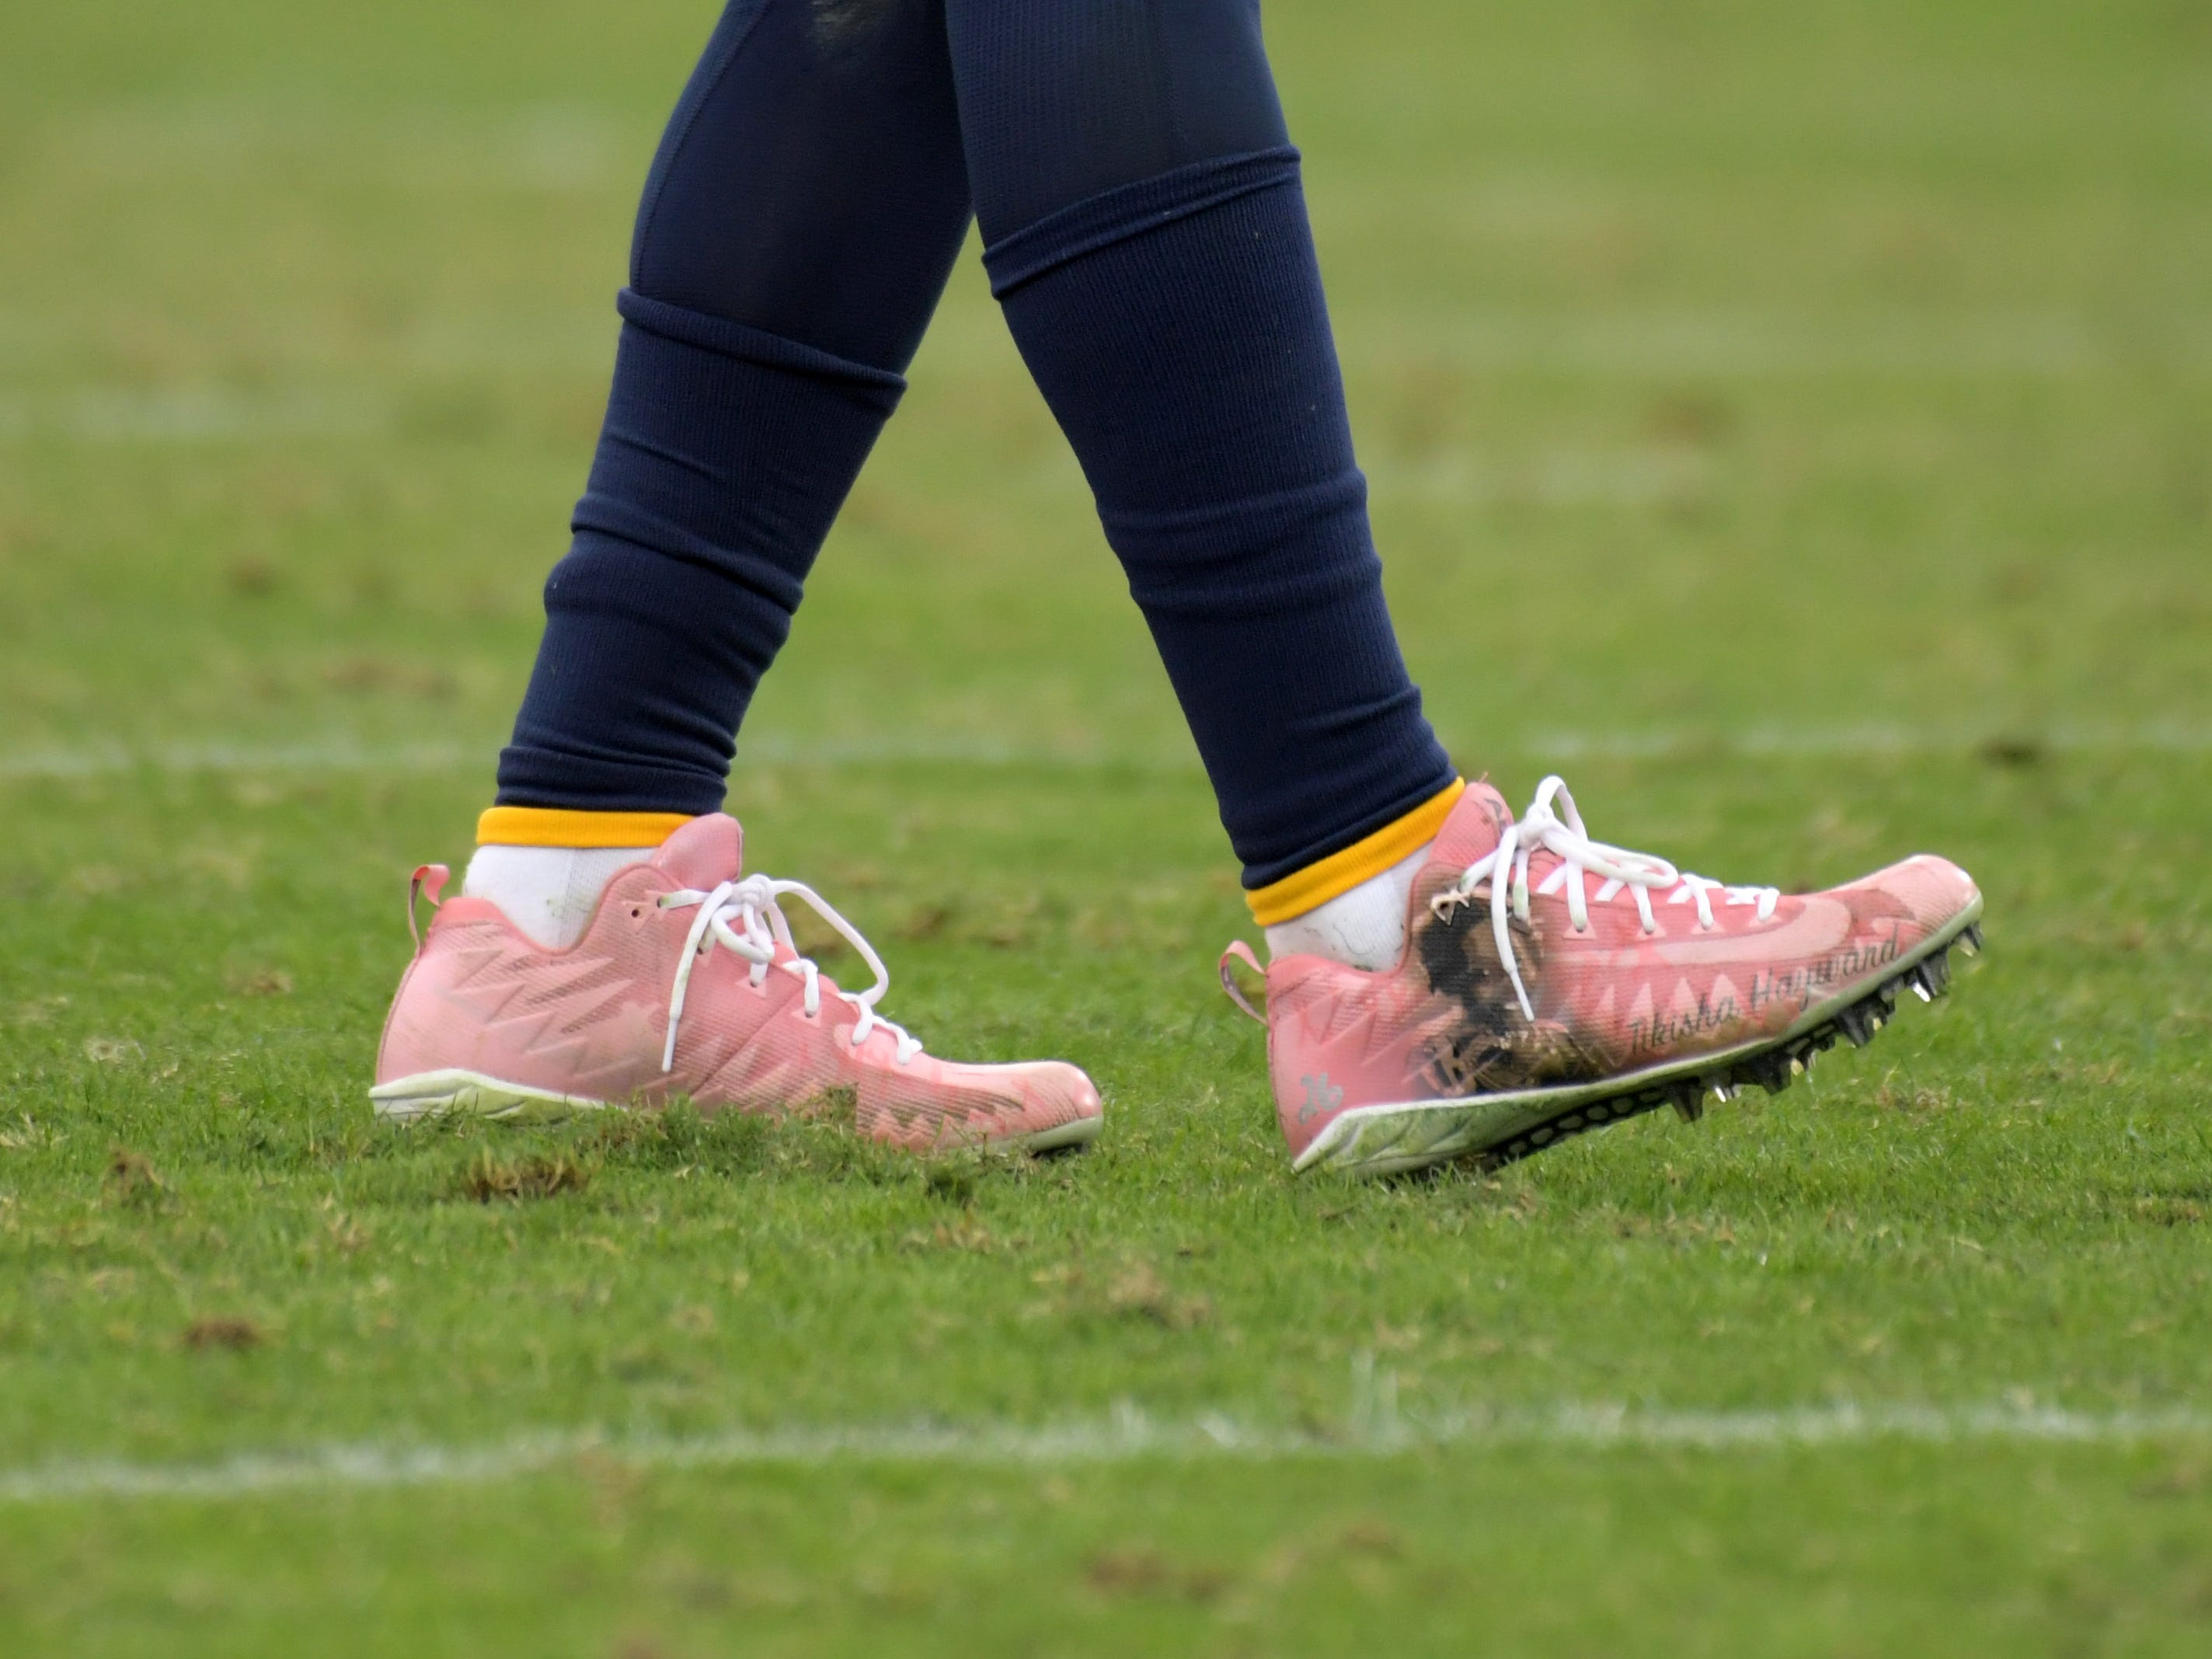 Los Angeles Chargers cornerback Casey Hayward wears personalized Nike cleats as part of the My Cause My Cleats campaign during the game against the Cincinnati Bengals at StubHub Center.